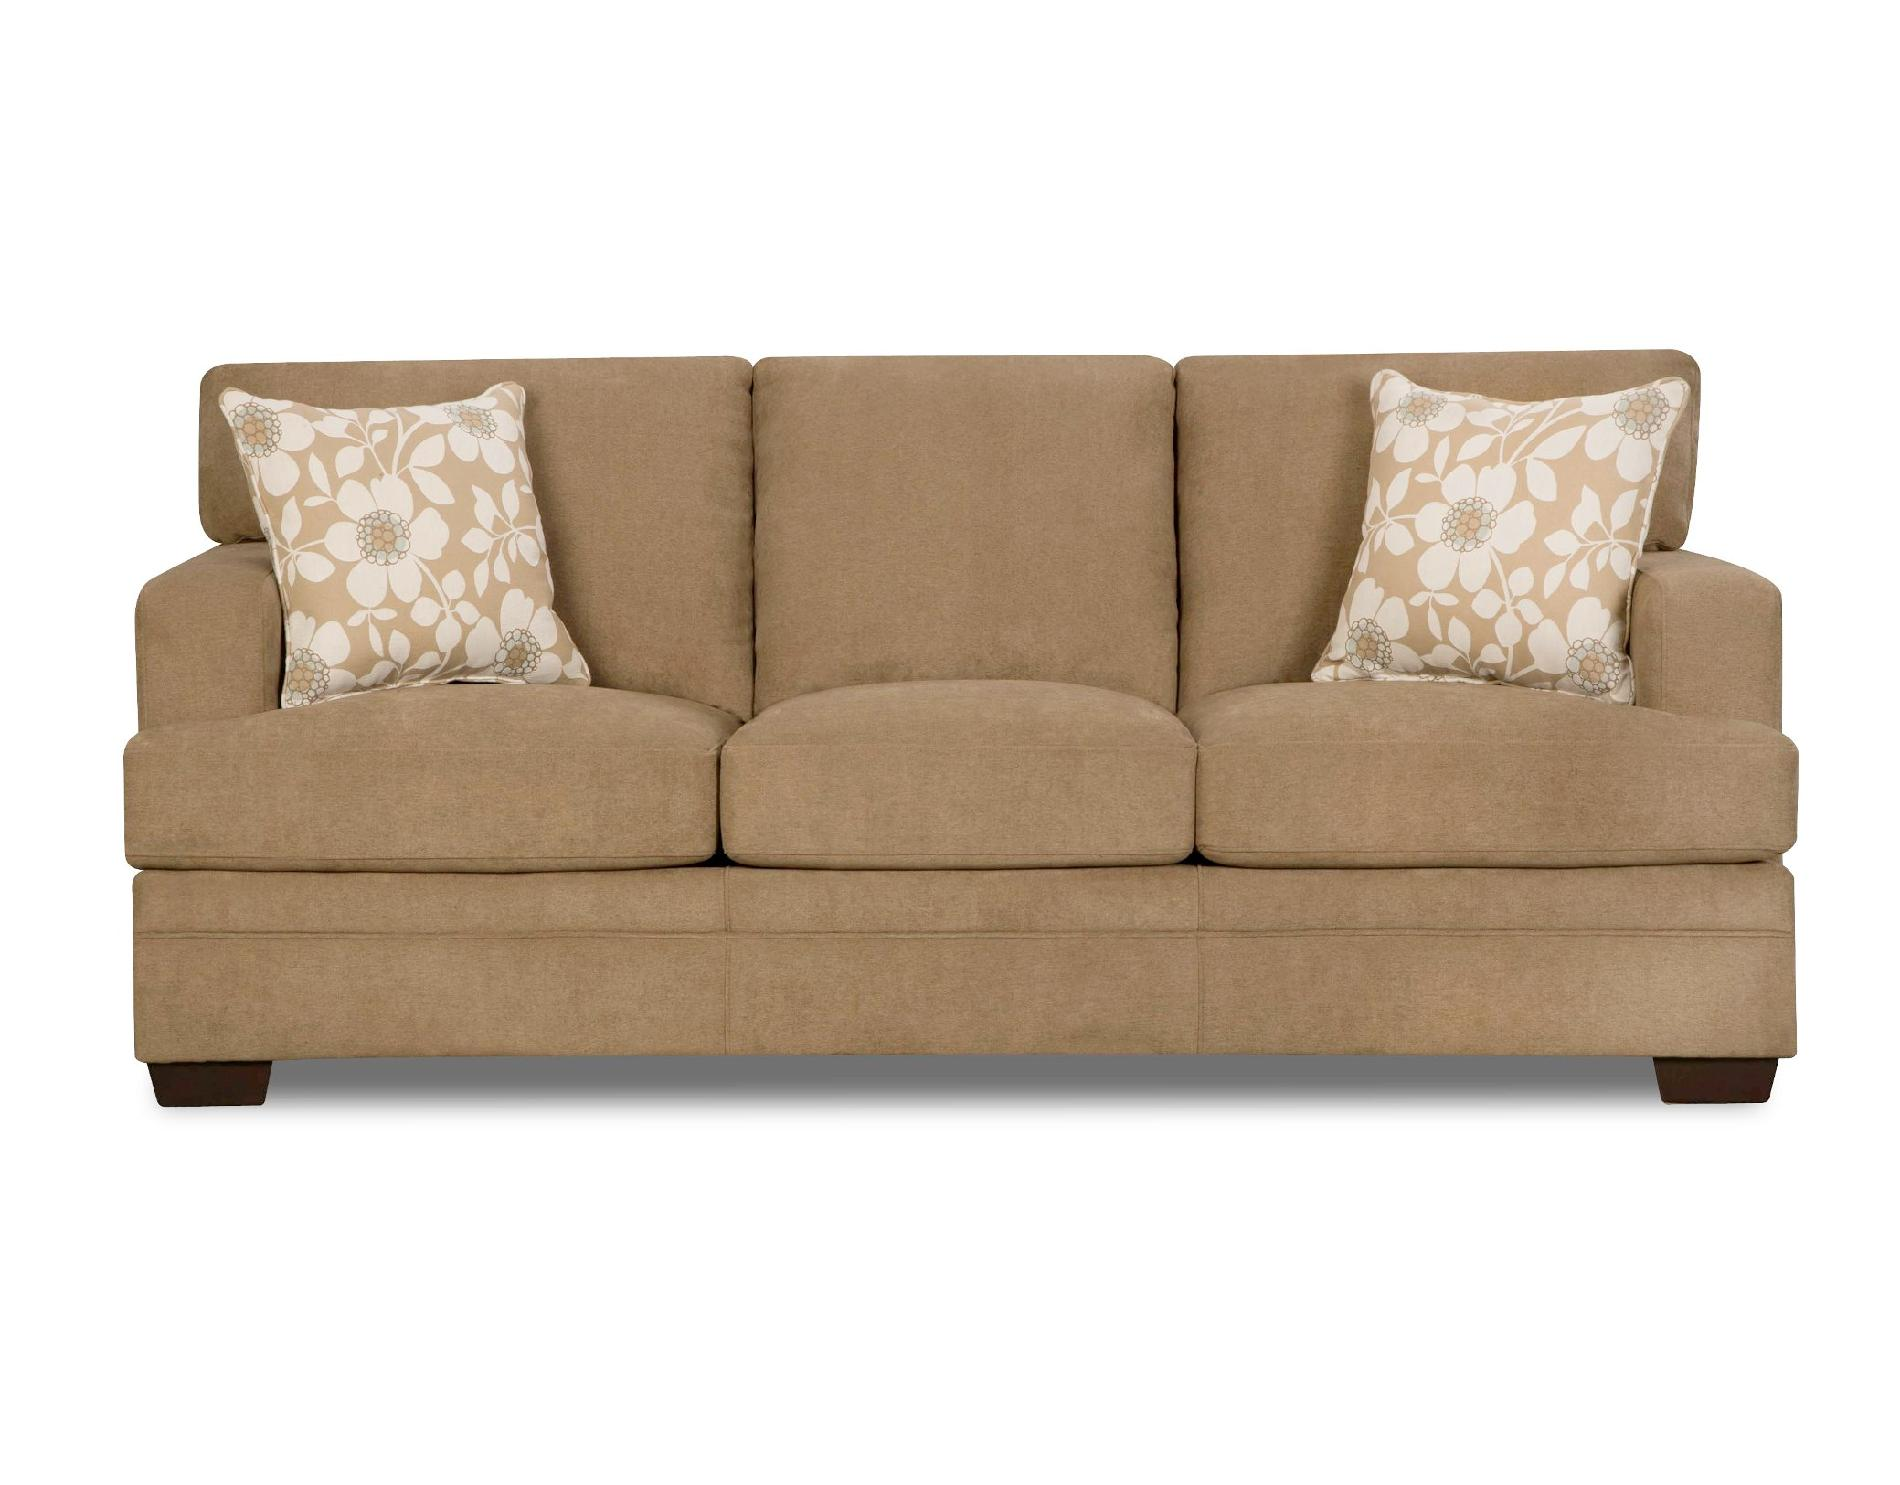 Simmons Upholstery Sofas & Loveseats Sears